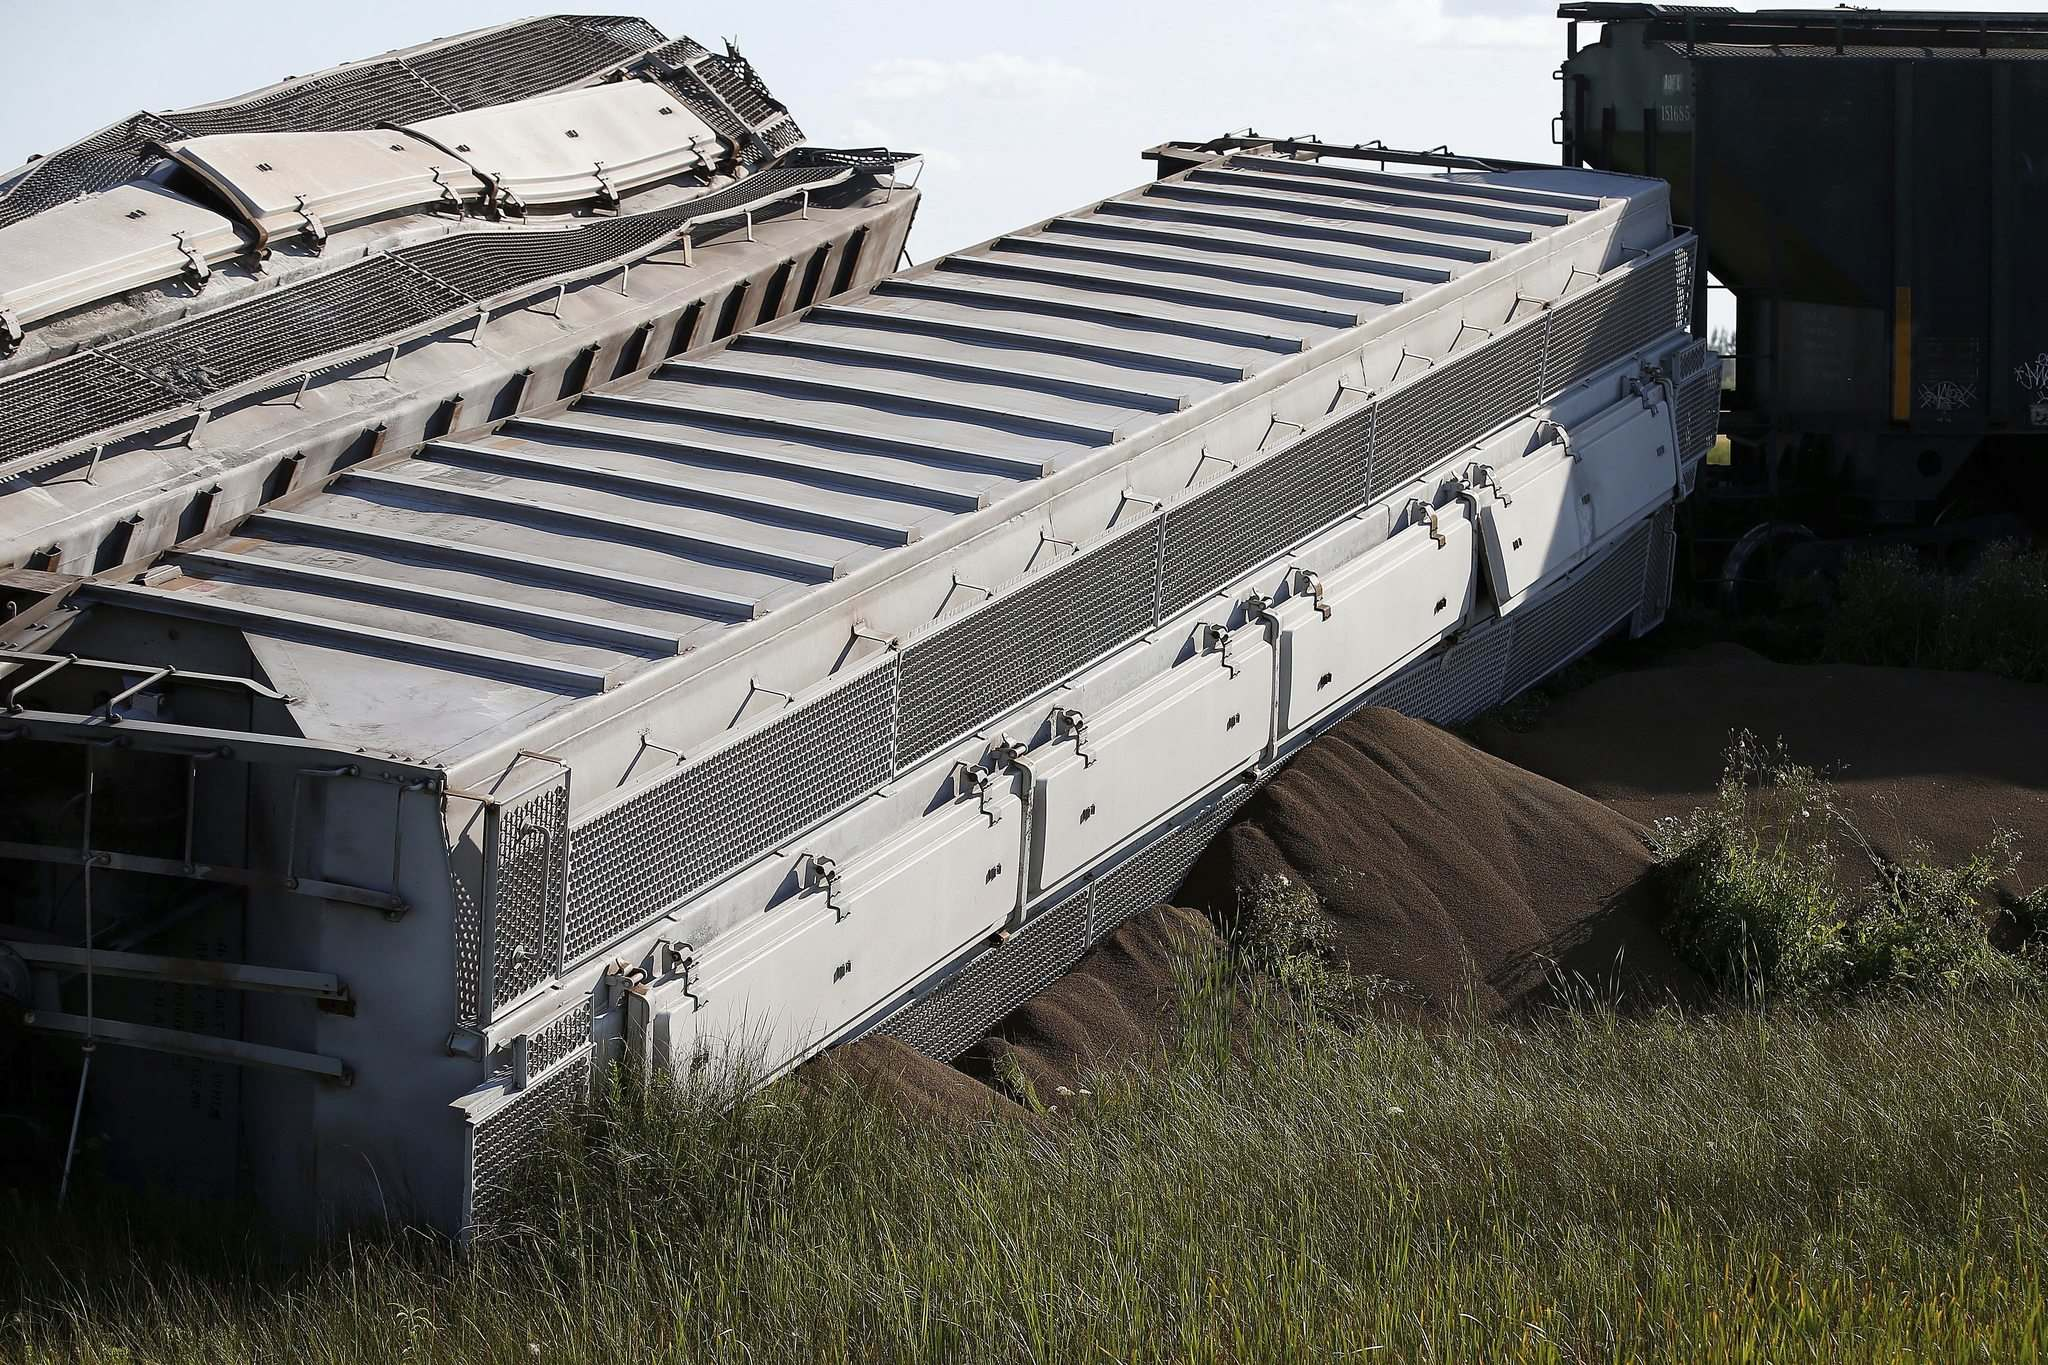 The 26 cars contained potash, a fertilizer. No one was injured in the derailment. (John Woods / Winnipeg Free Press)</p>